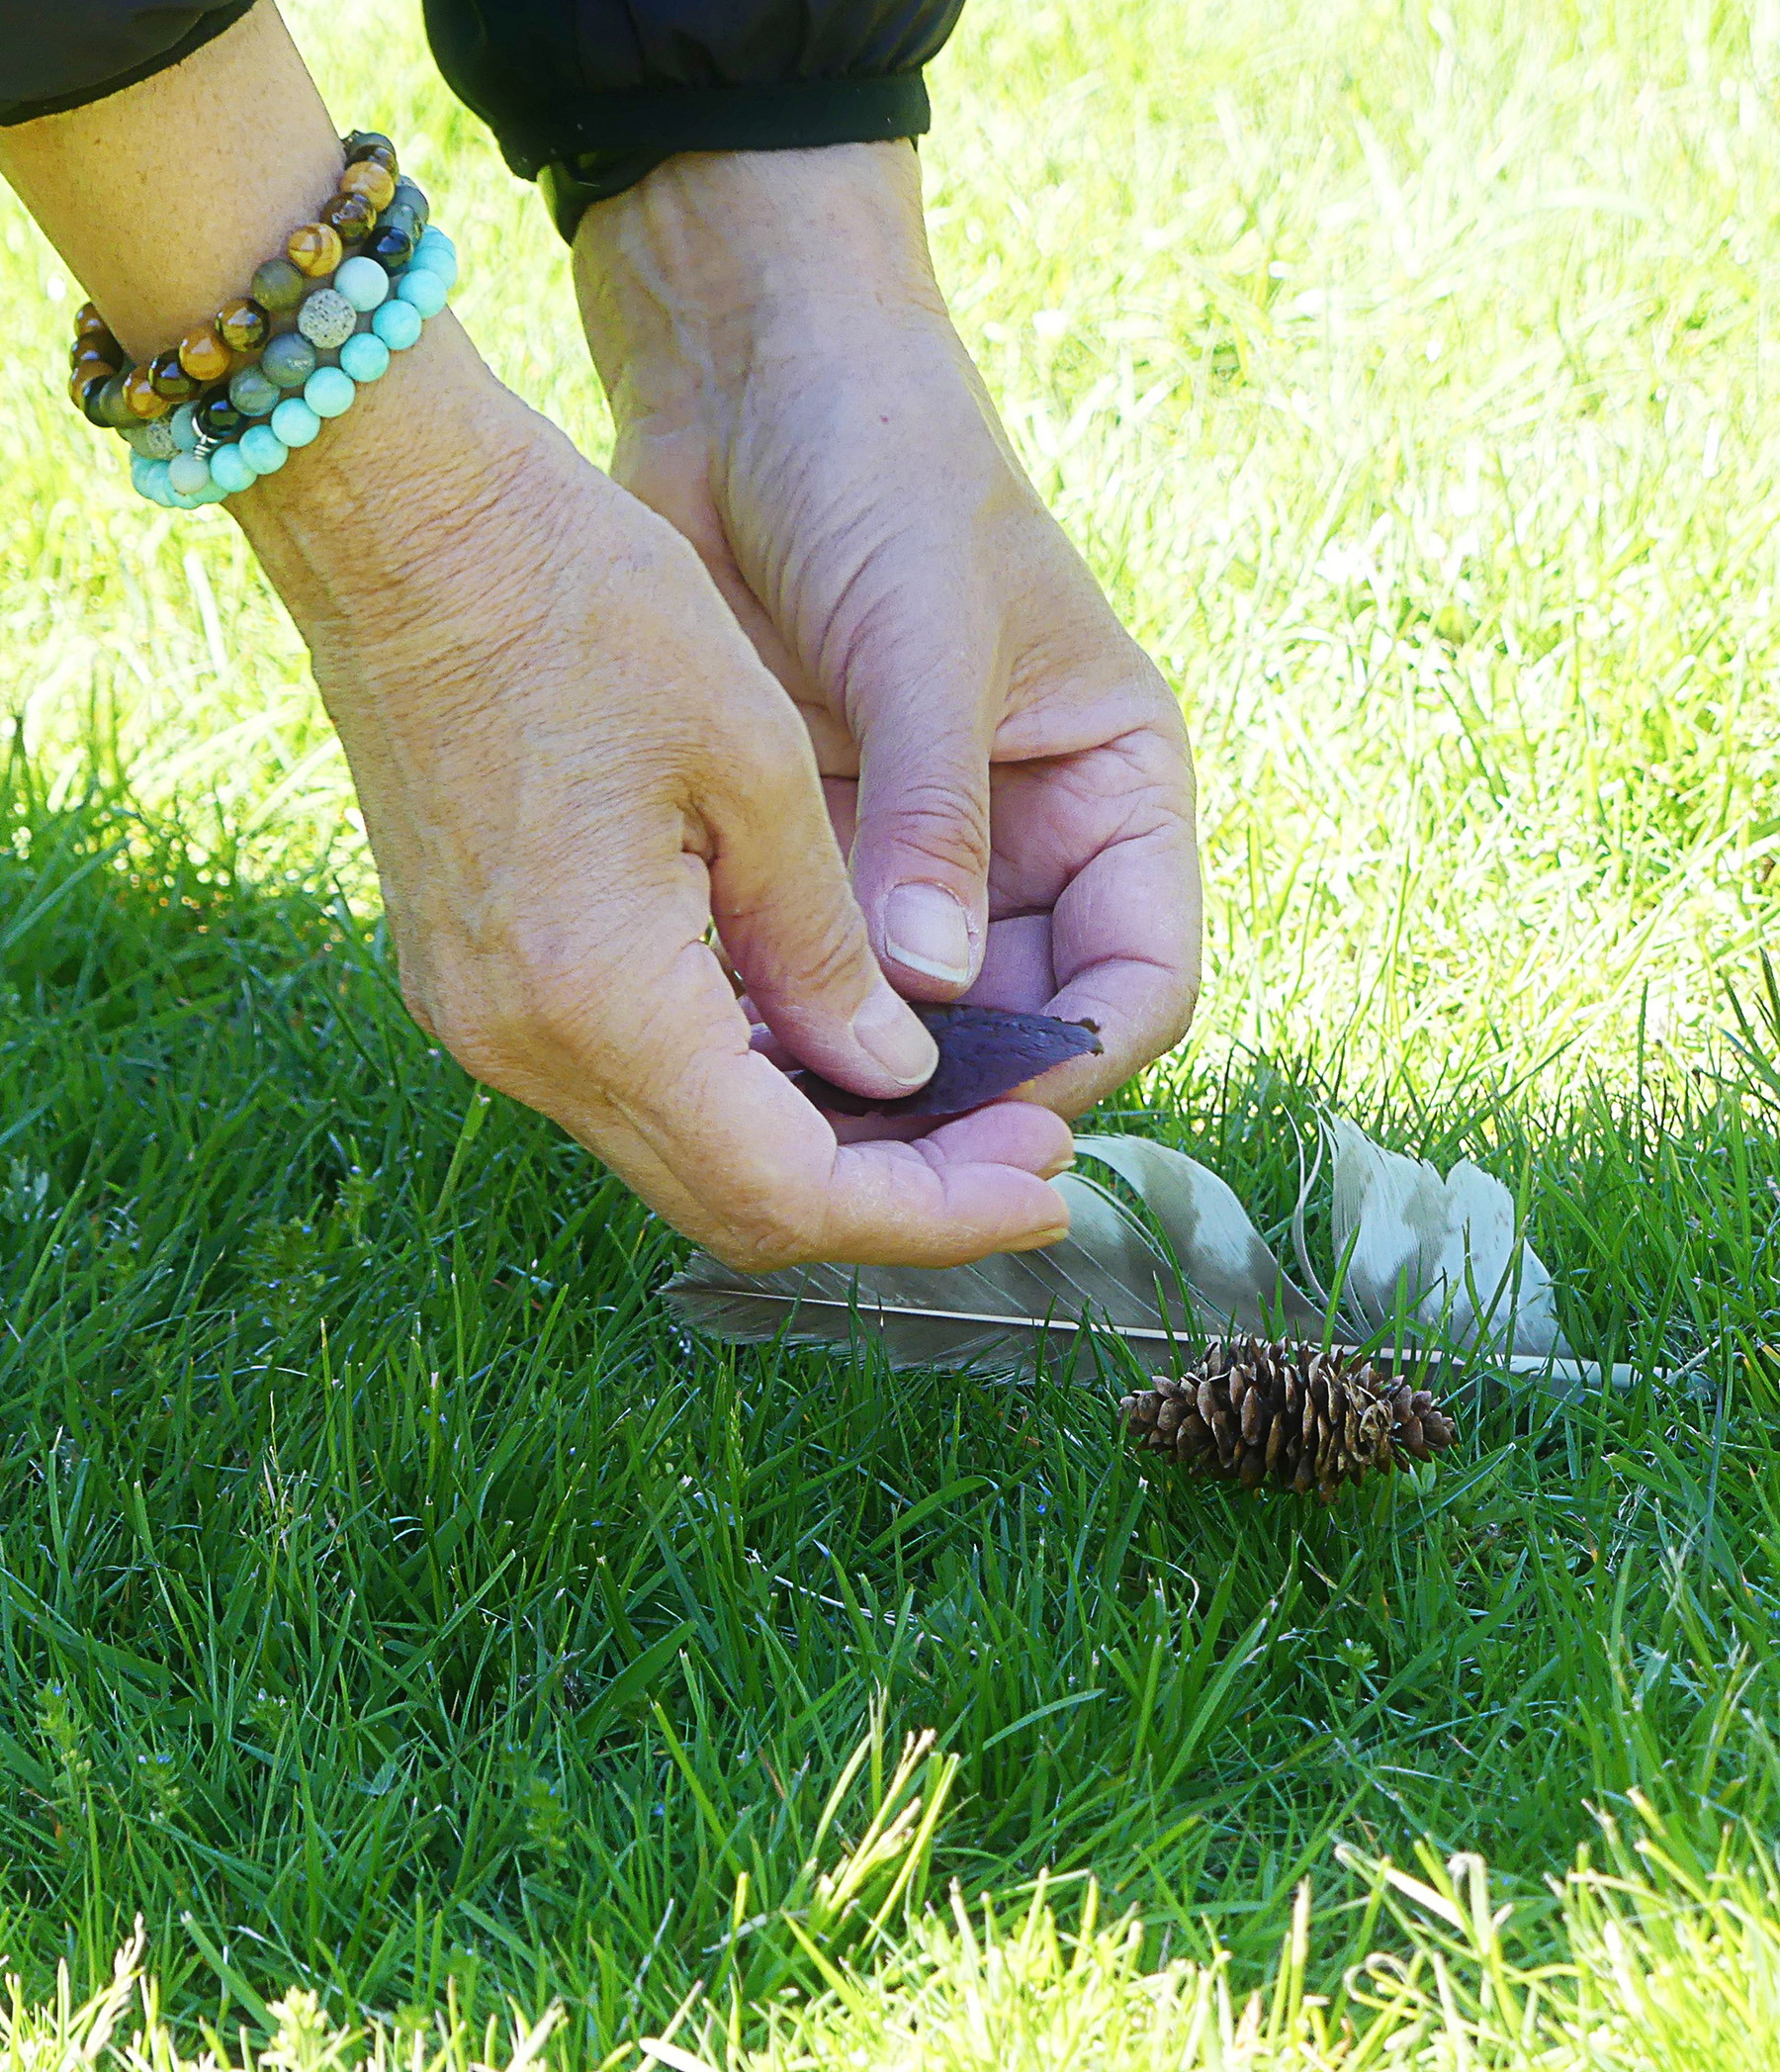 Close up image of hands touching random natural items like rocks and a pine cone.